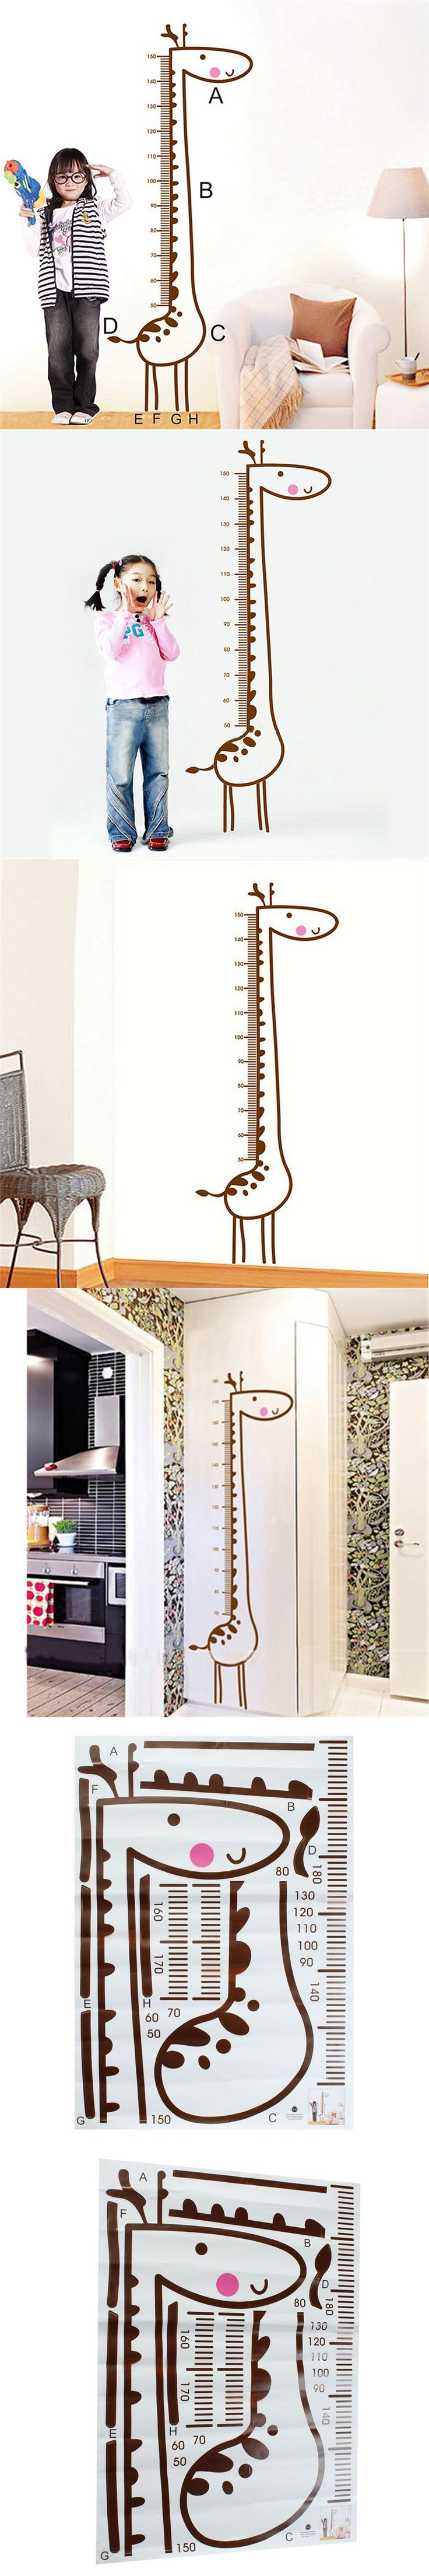 Designed le chien savant desk with chair for magis junior hipster - New Stylish Diy Removable Giraffe Wall Sticker Kids Child Growth Chart Height Measure Home Kids Bedroom